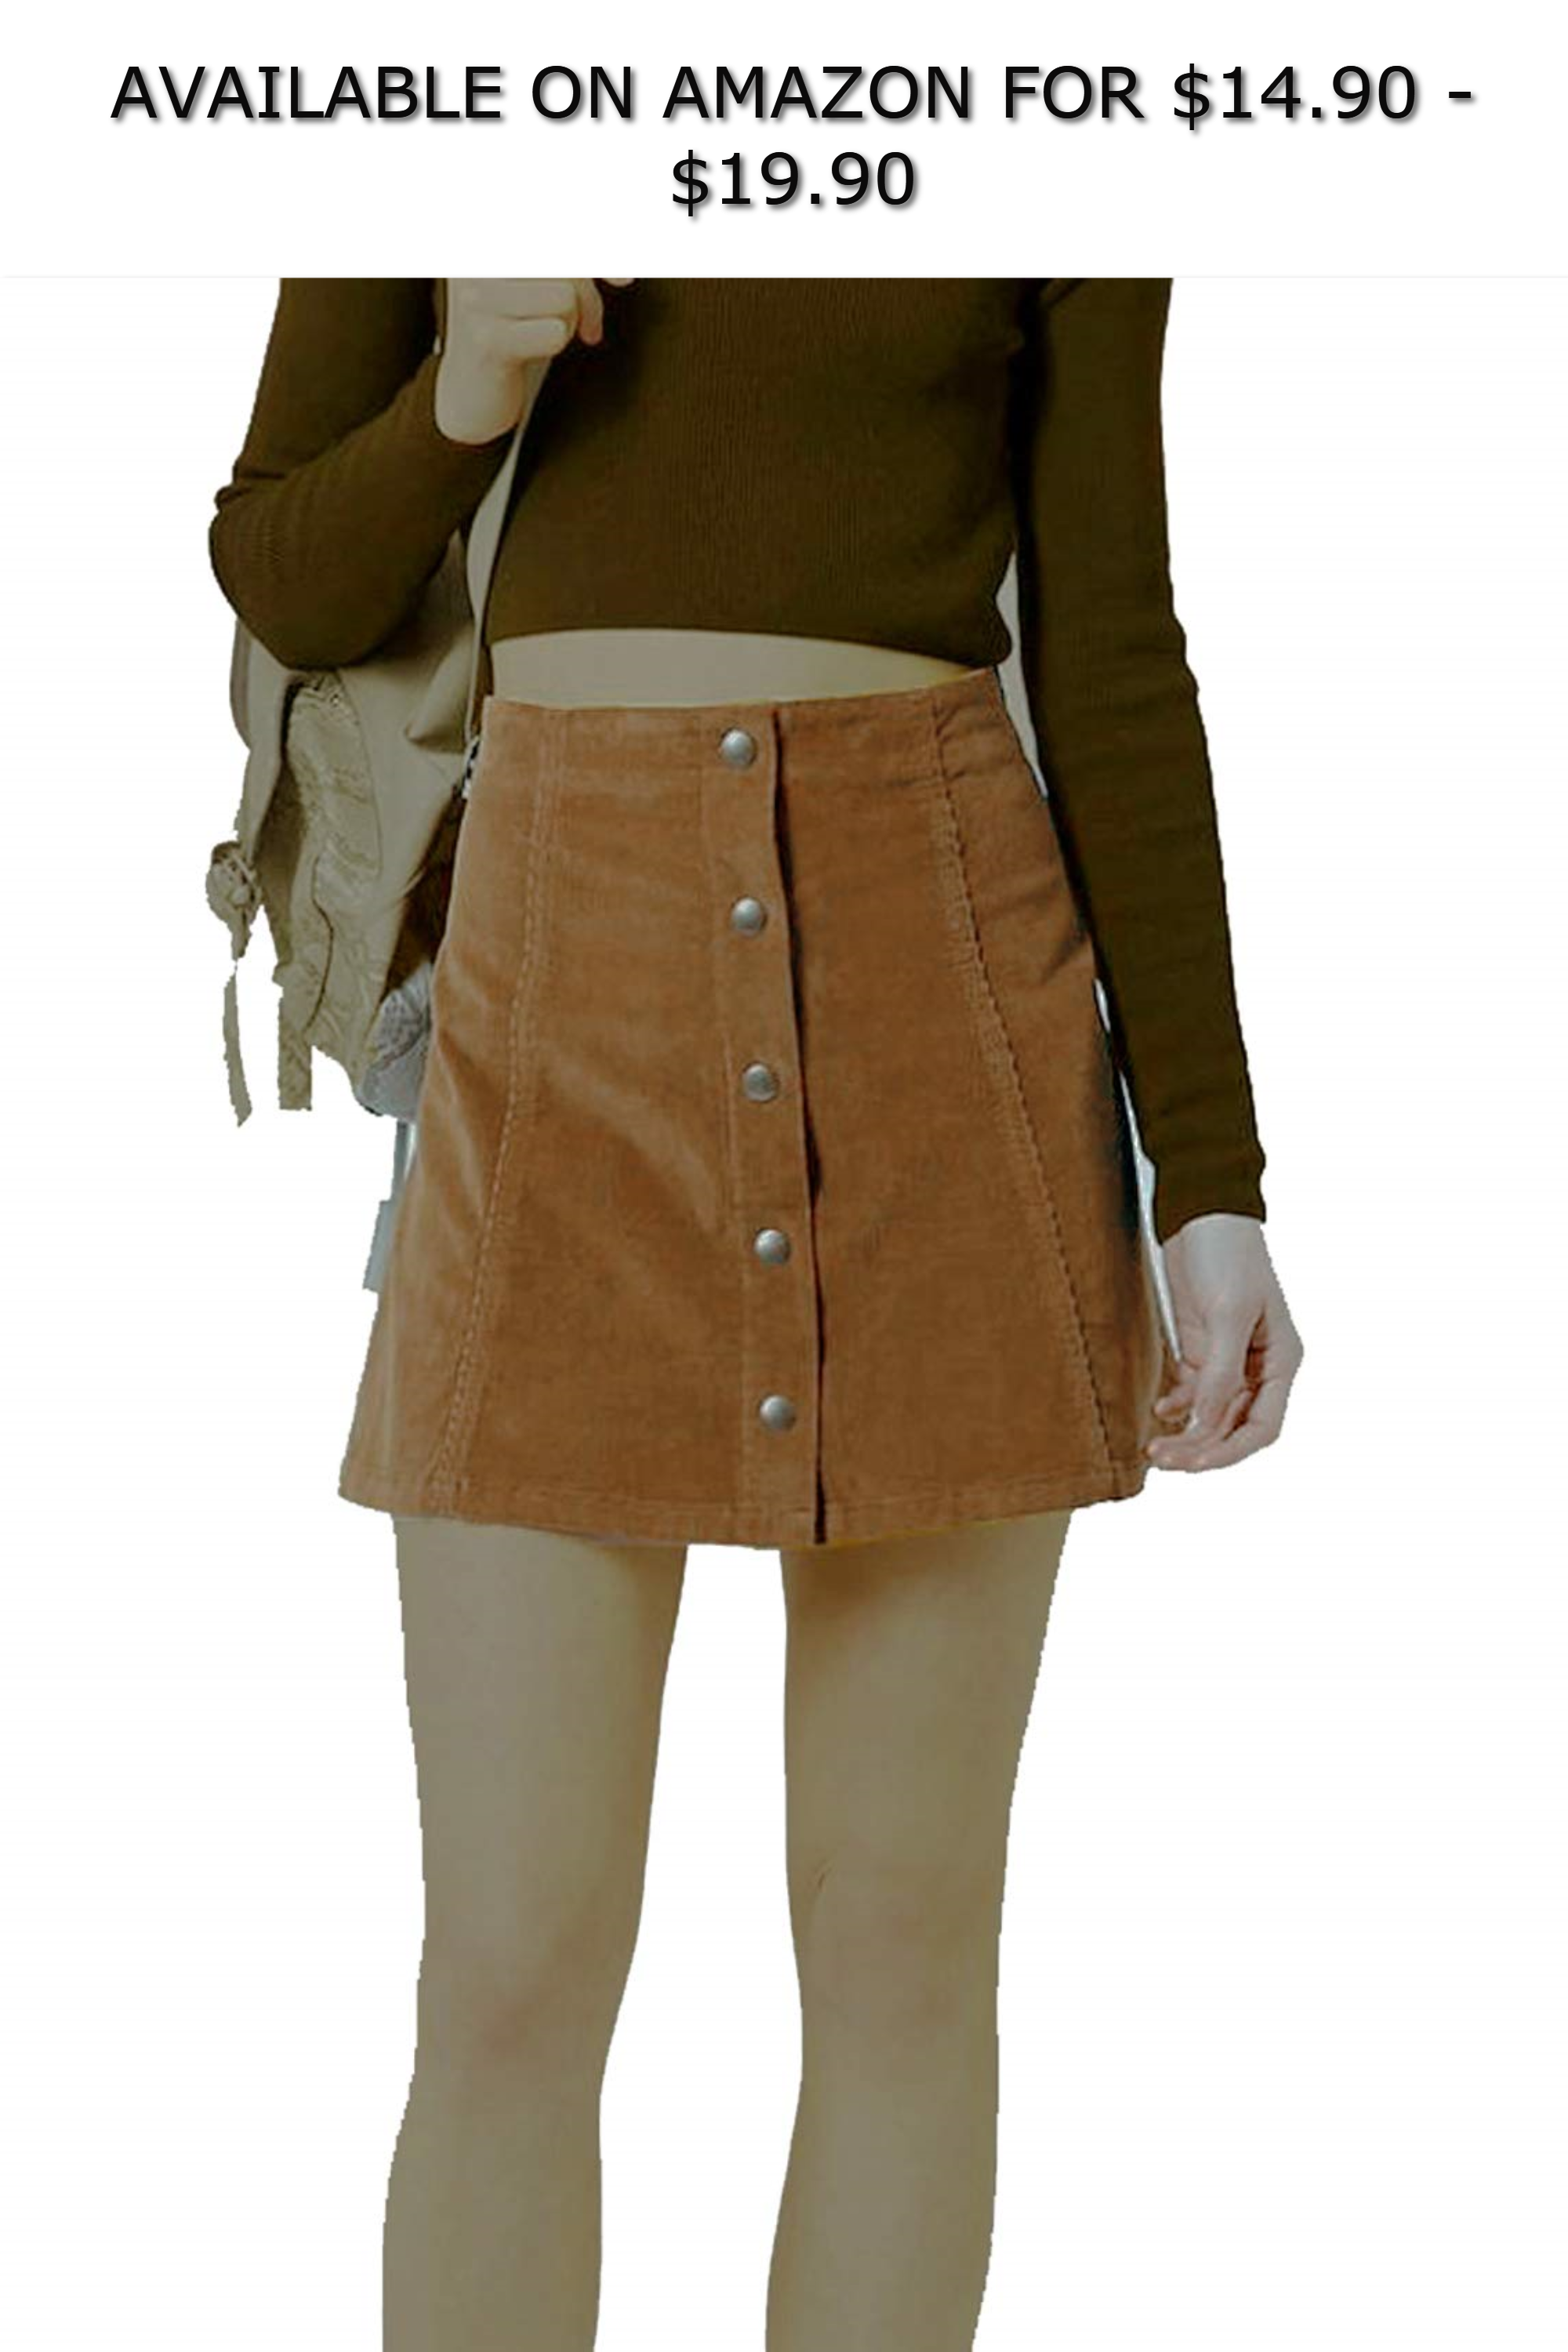 d48cc66631 Joanna Women's Corduroy Button Closure Mini A-Line Skirt ◇ AVAILABLE ON  AMAZON FOR: